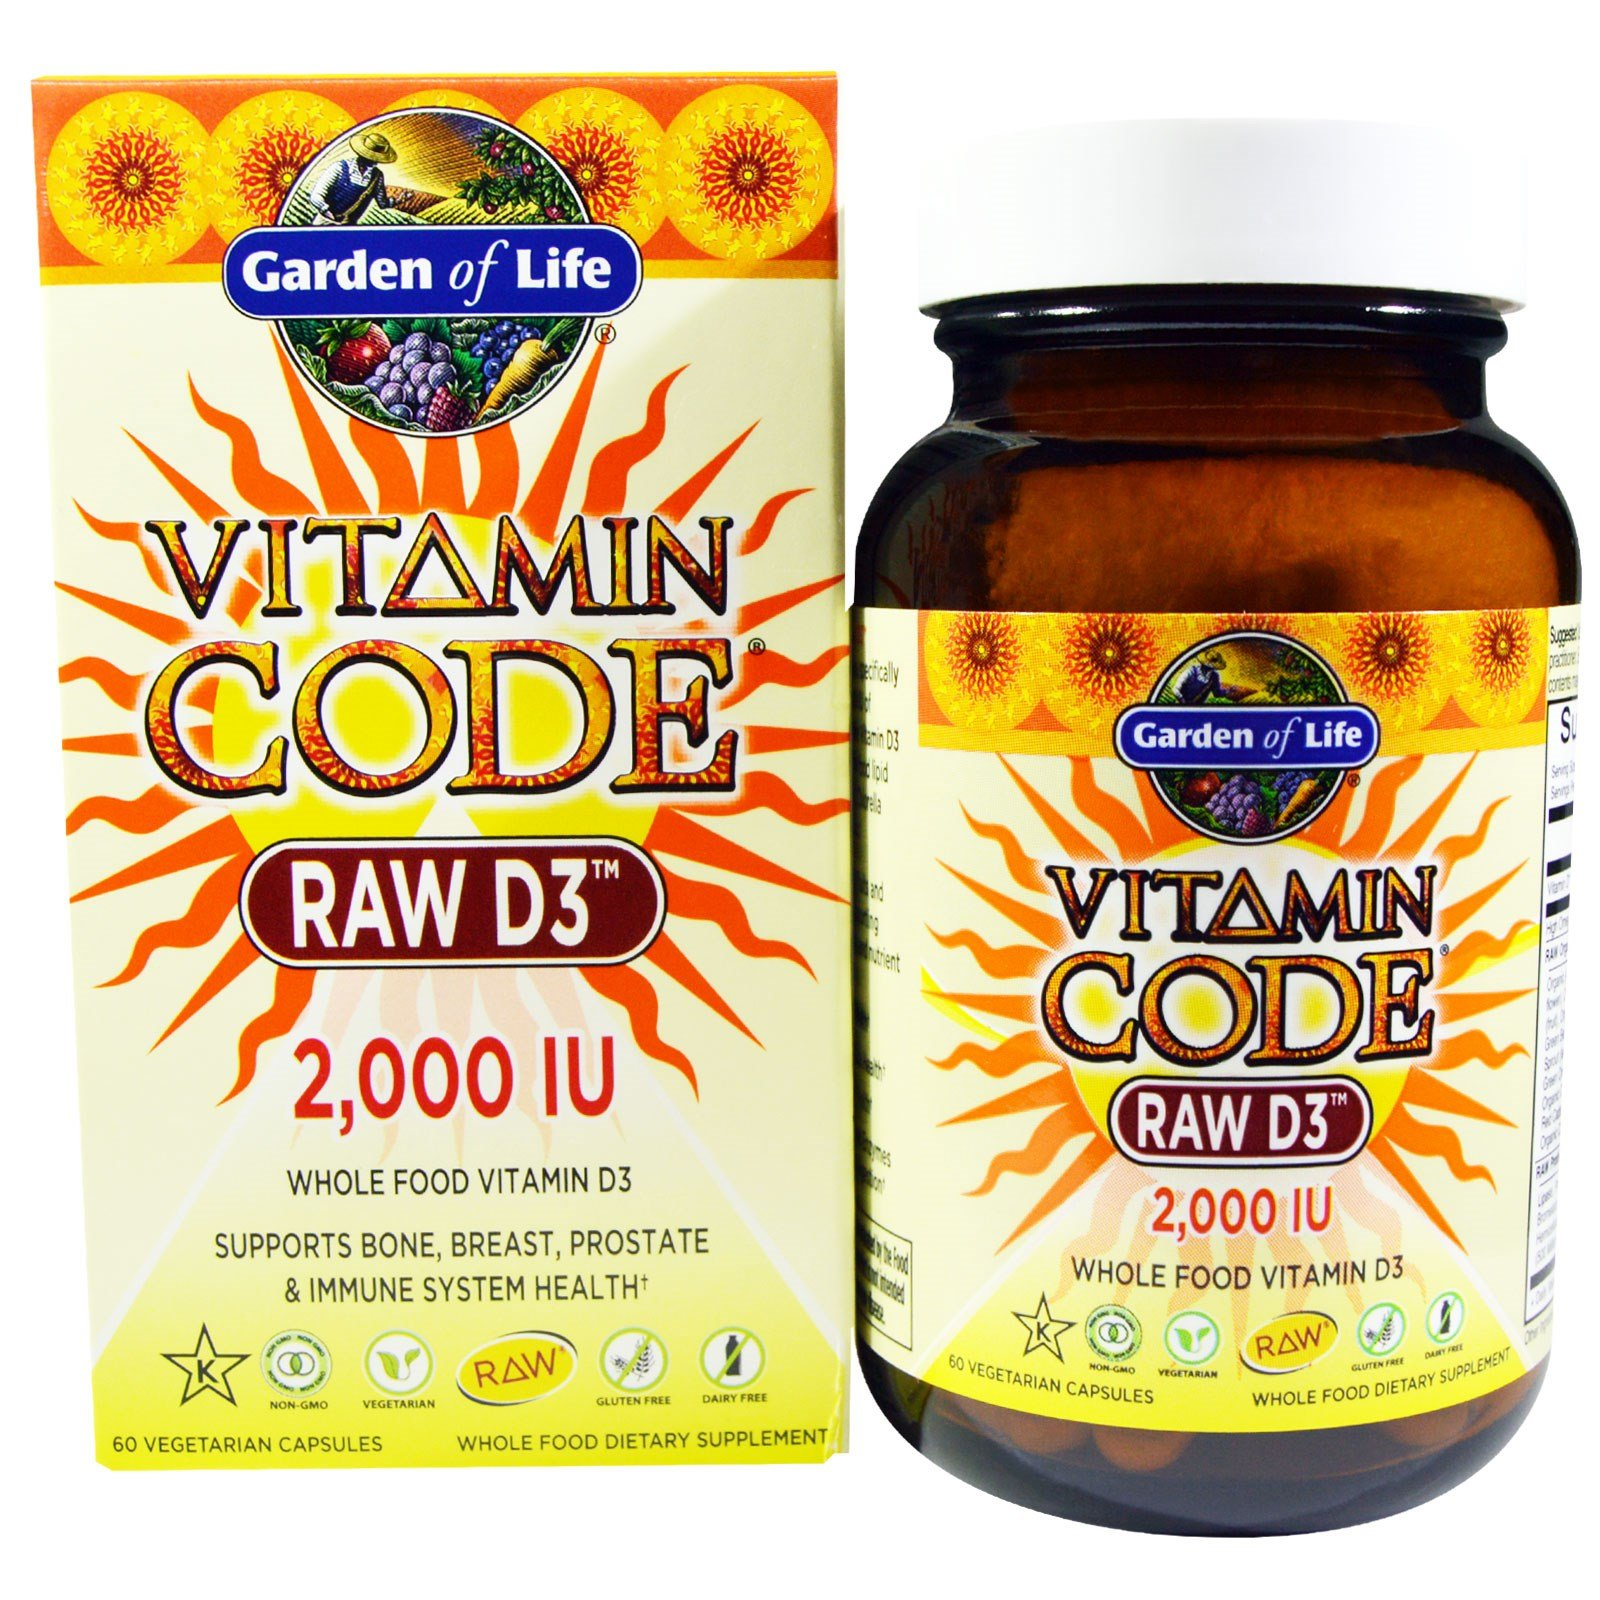 prenatal life capsules vegan vitamin com by ip code walmart of raw garden